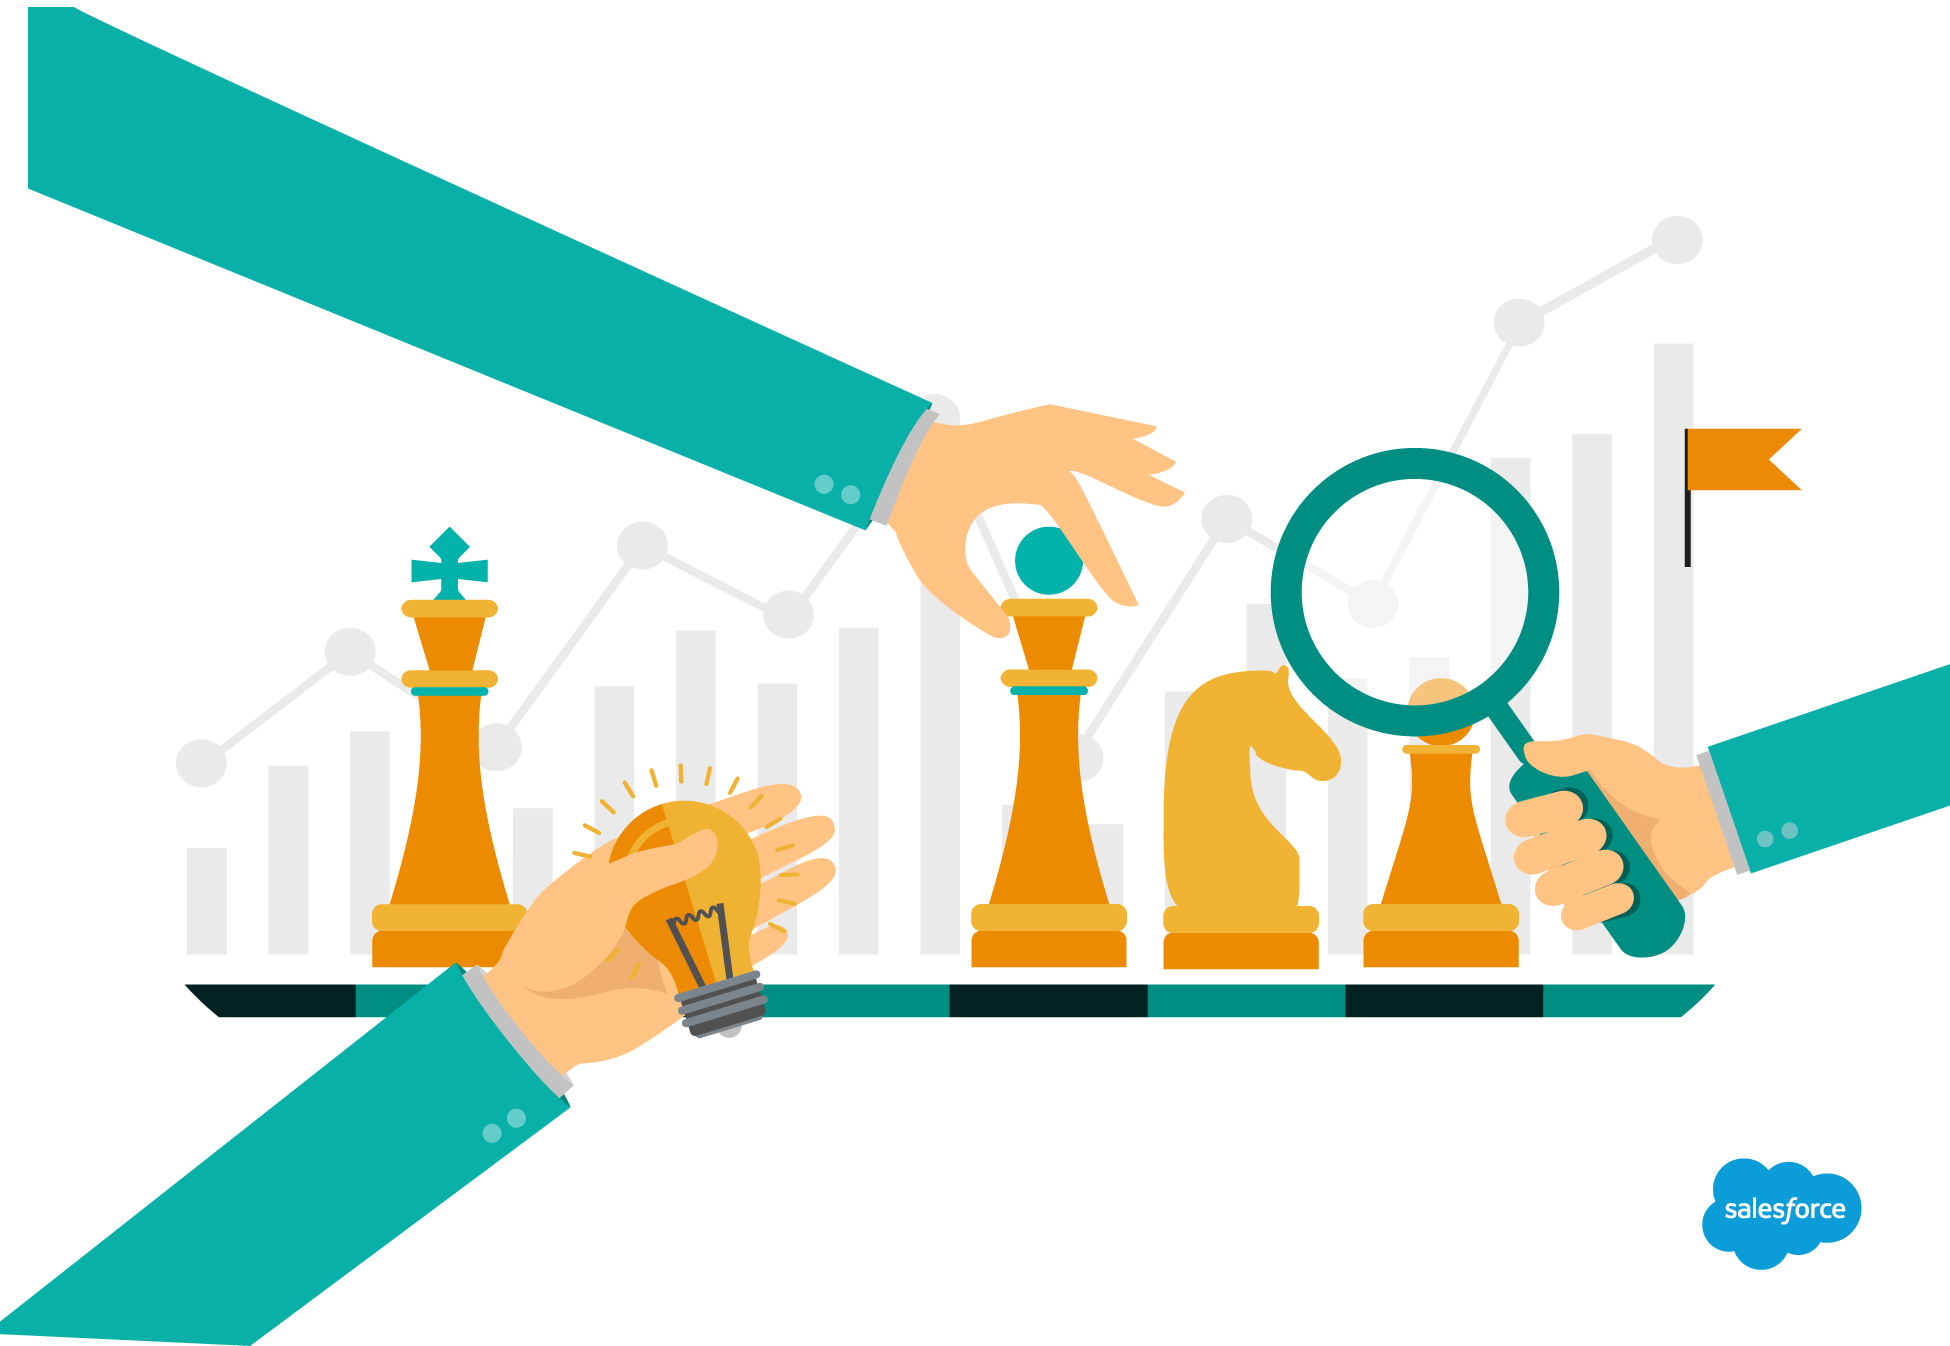 use your business objectives to formulate a data strategy